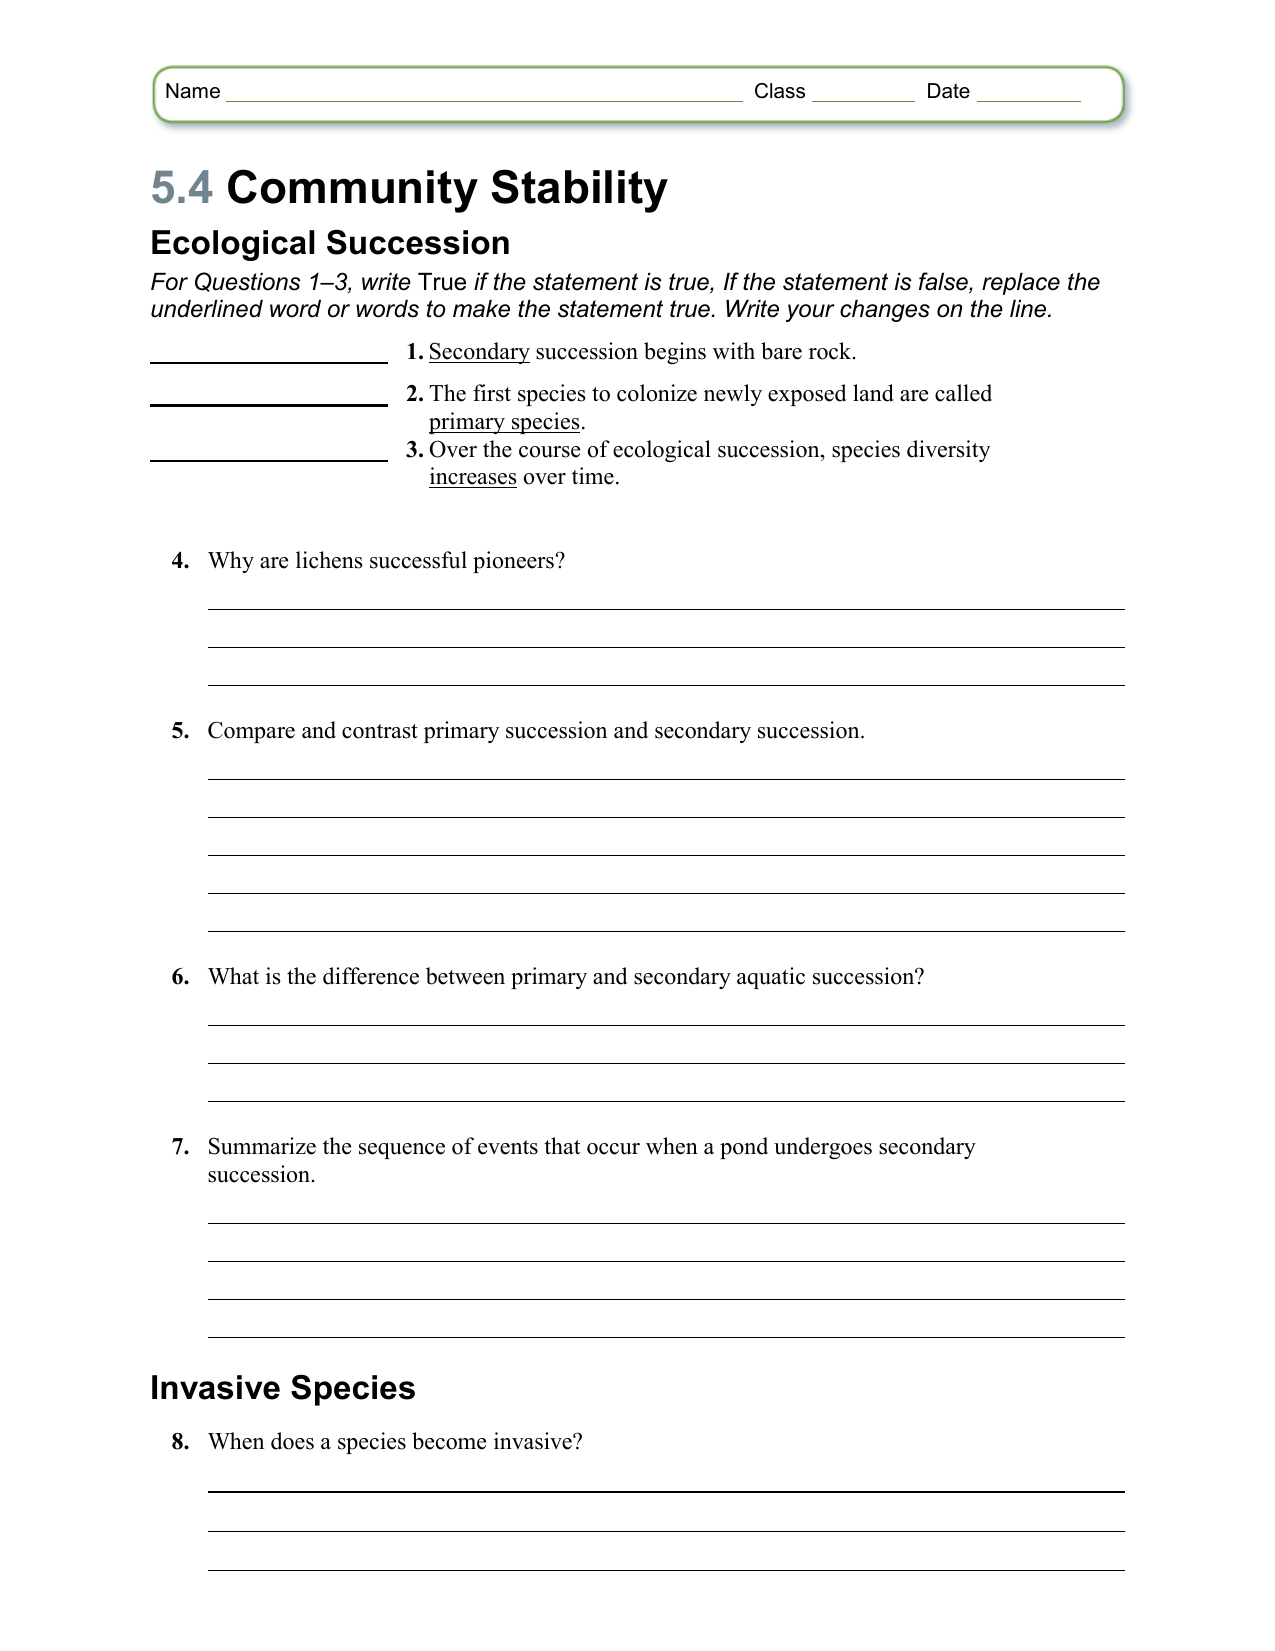 Ecological Succession Worksheet